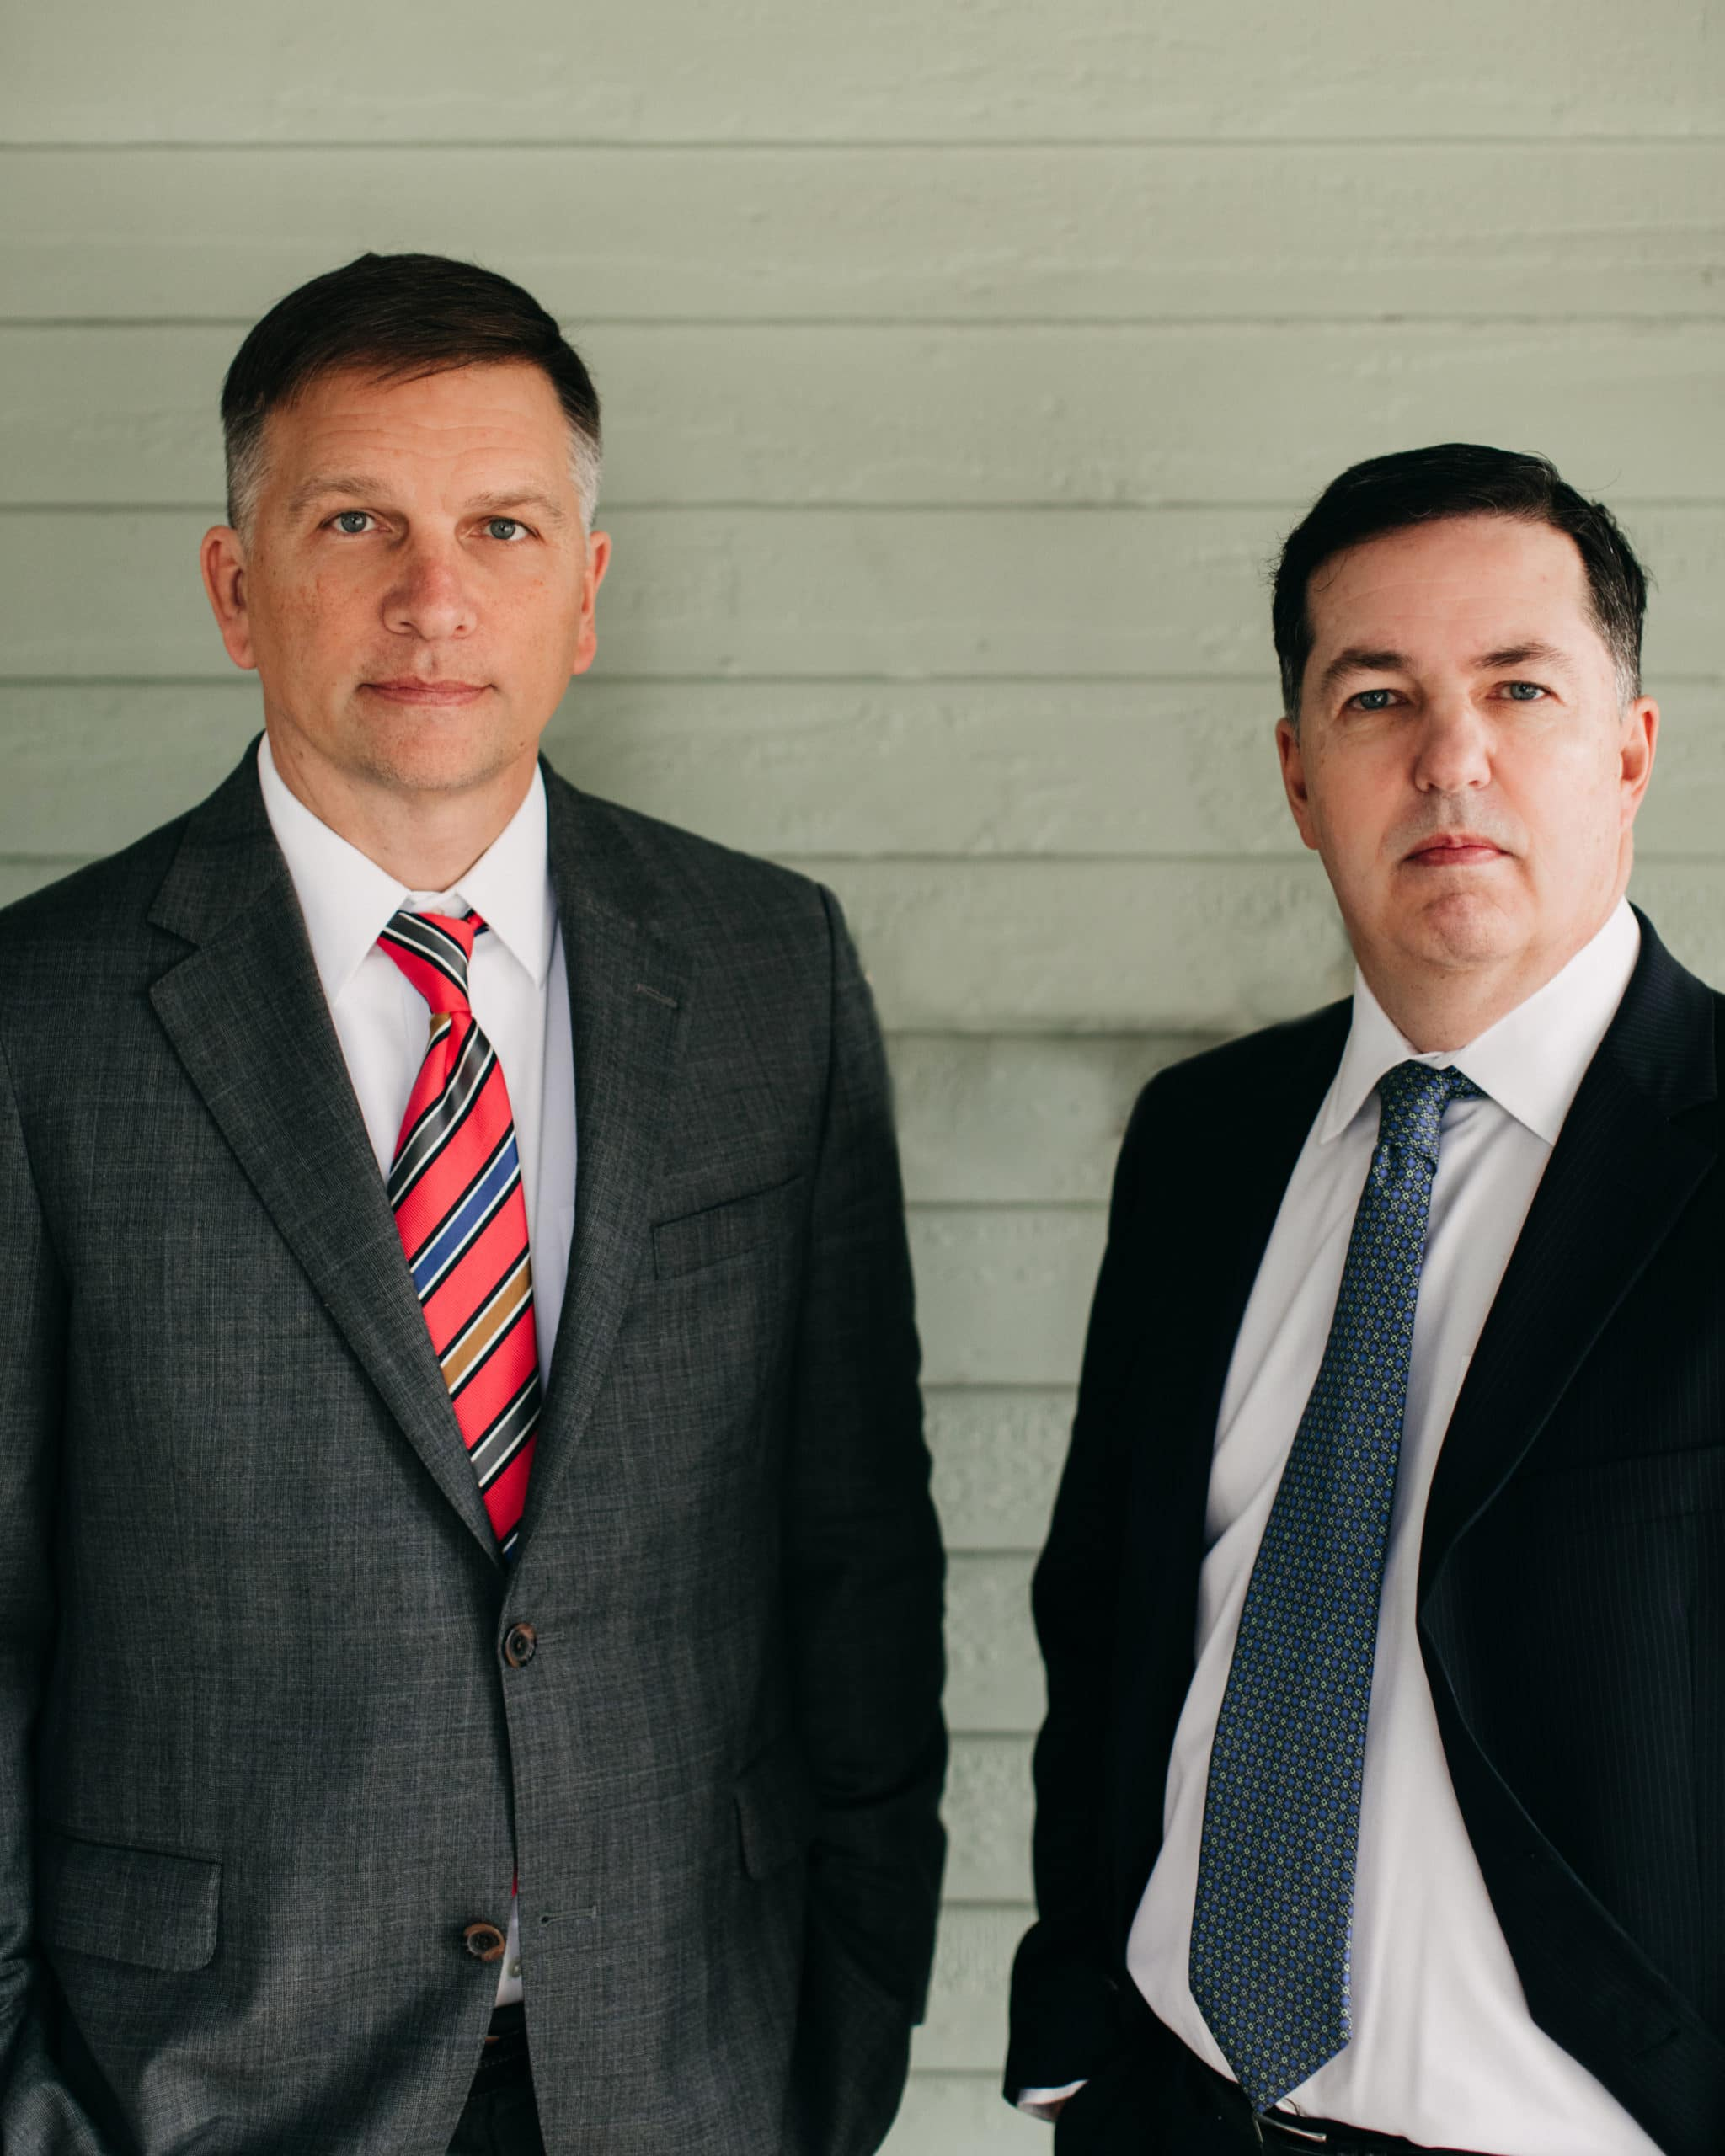 Dallas Criminal Defense Attorneys Clint Broden Right and Mick Mickelsen Left.